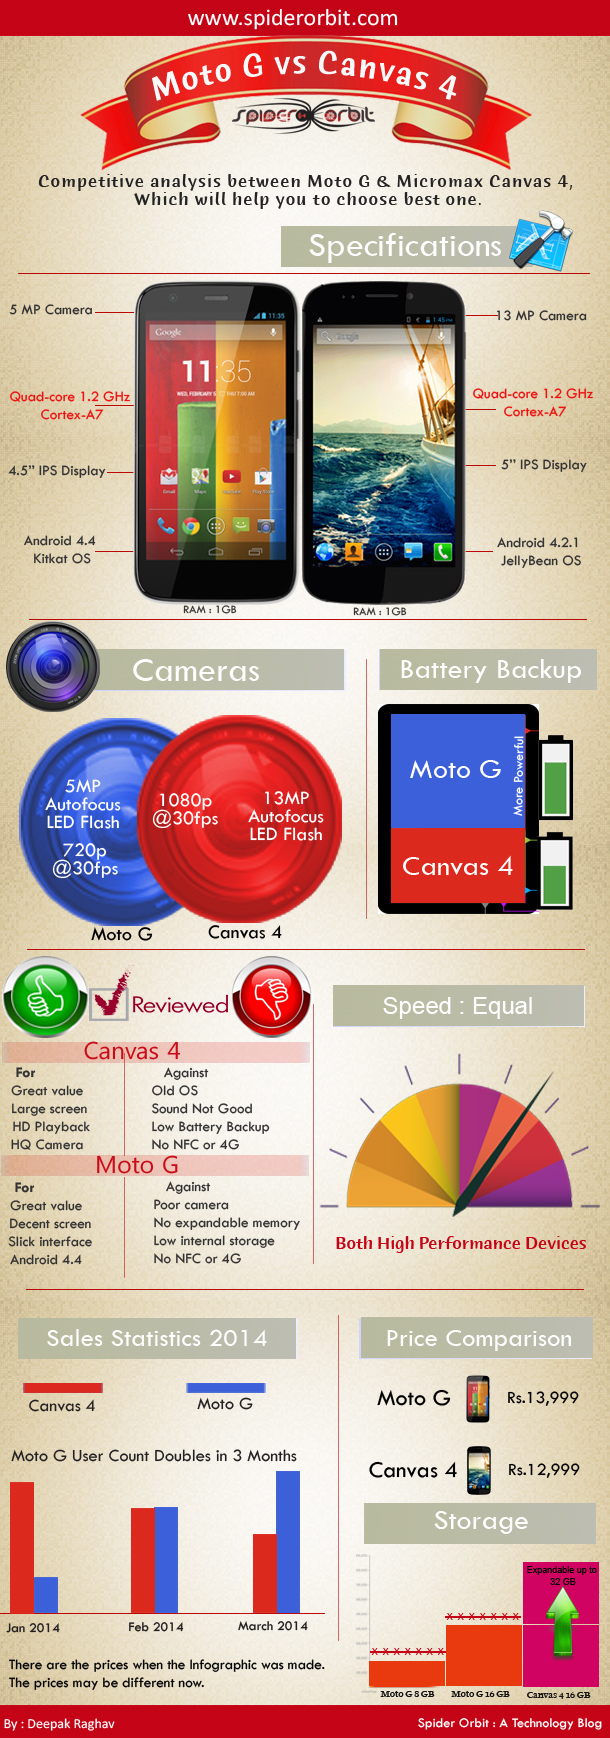 Moto G vs Micromax Canvas 4 Comparison Infographic - An Infographic from SpiderOrbit - A Technology blog by Deepak Raghav